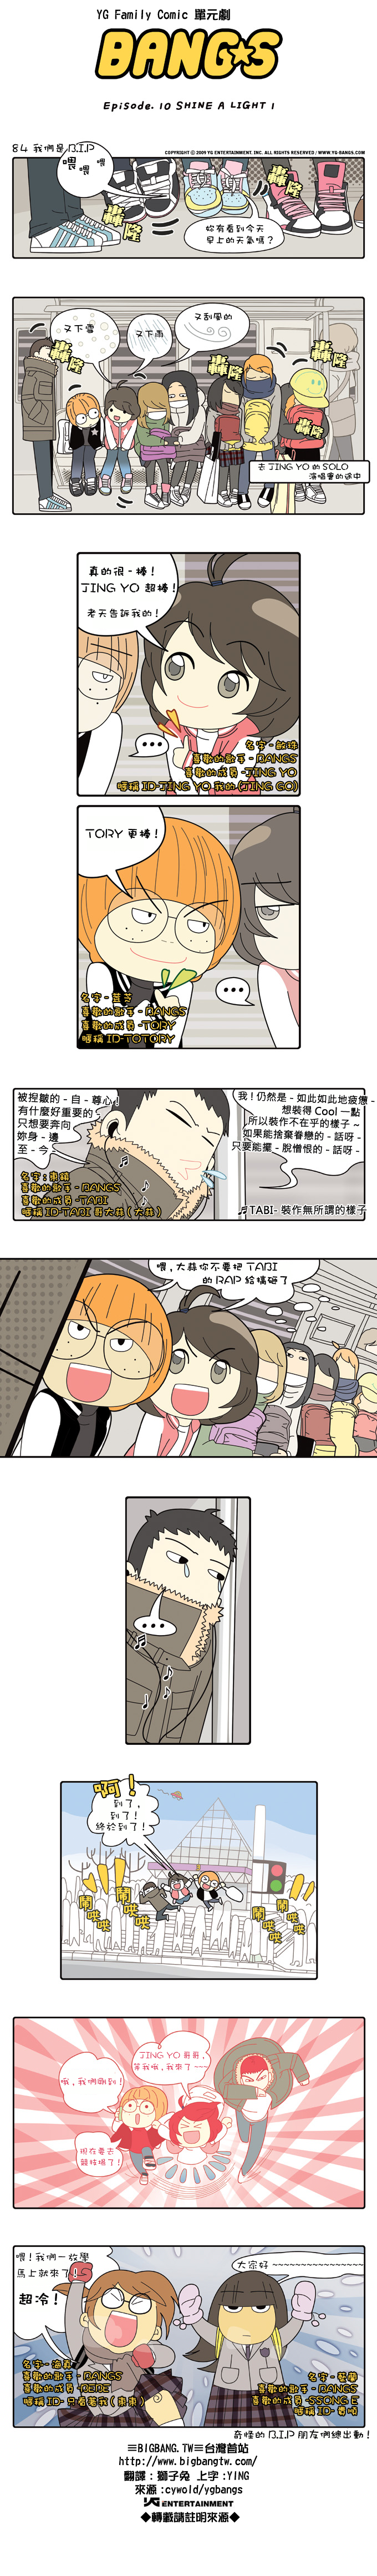 中譯 20091216_Episode 10_Shine A Light 084.png